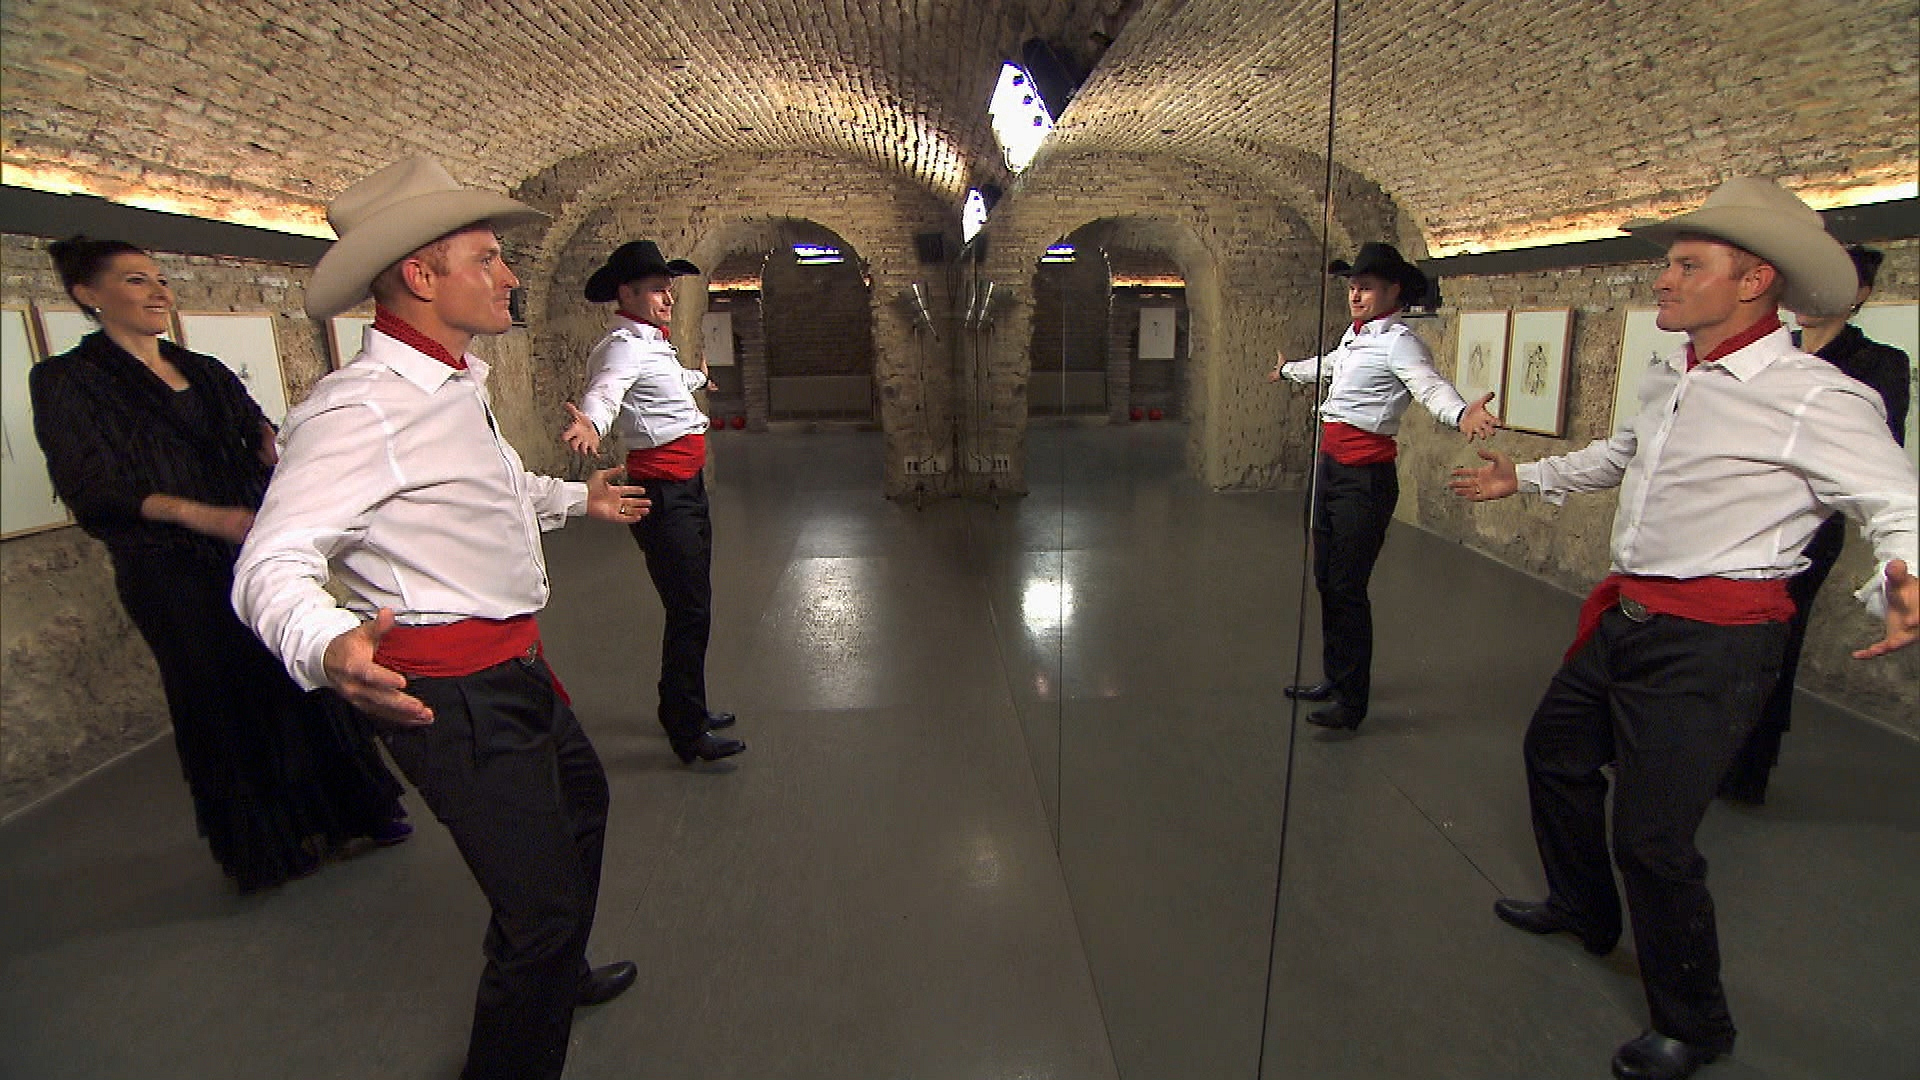 Cowboys perform Detour A in Season 24 Episode 10